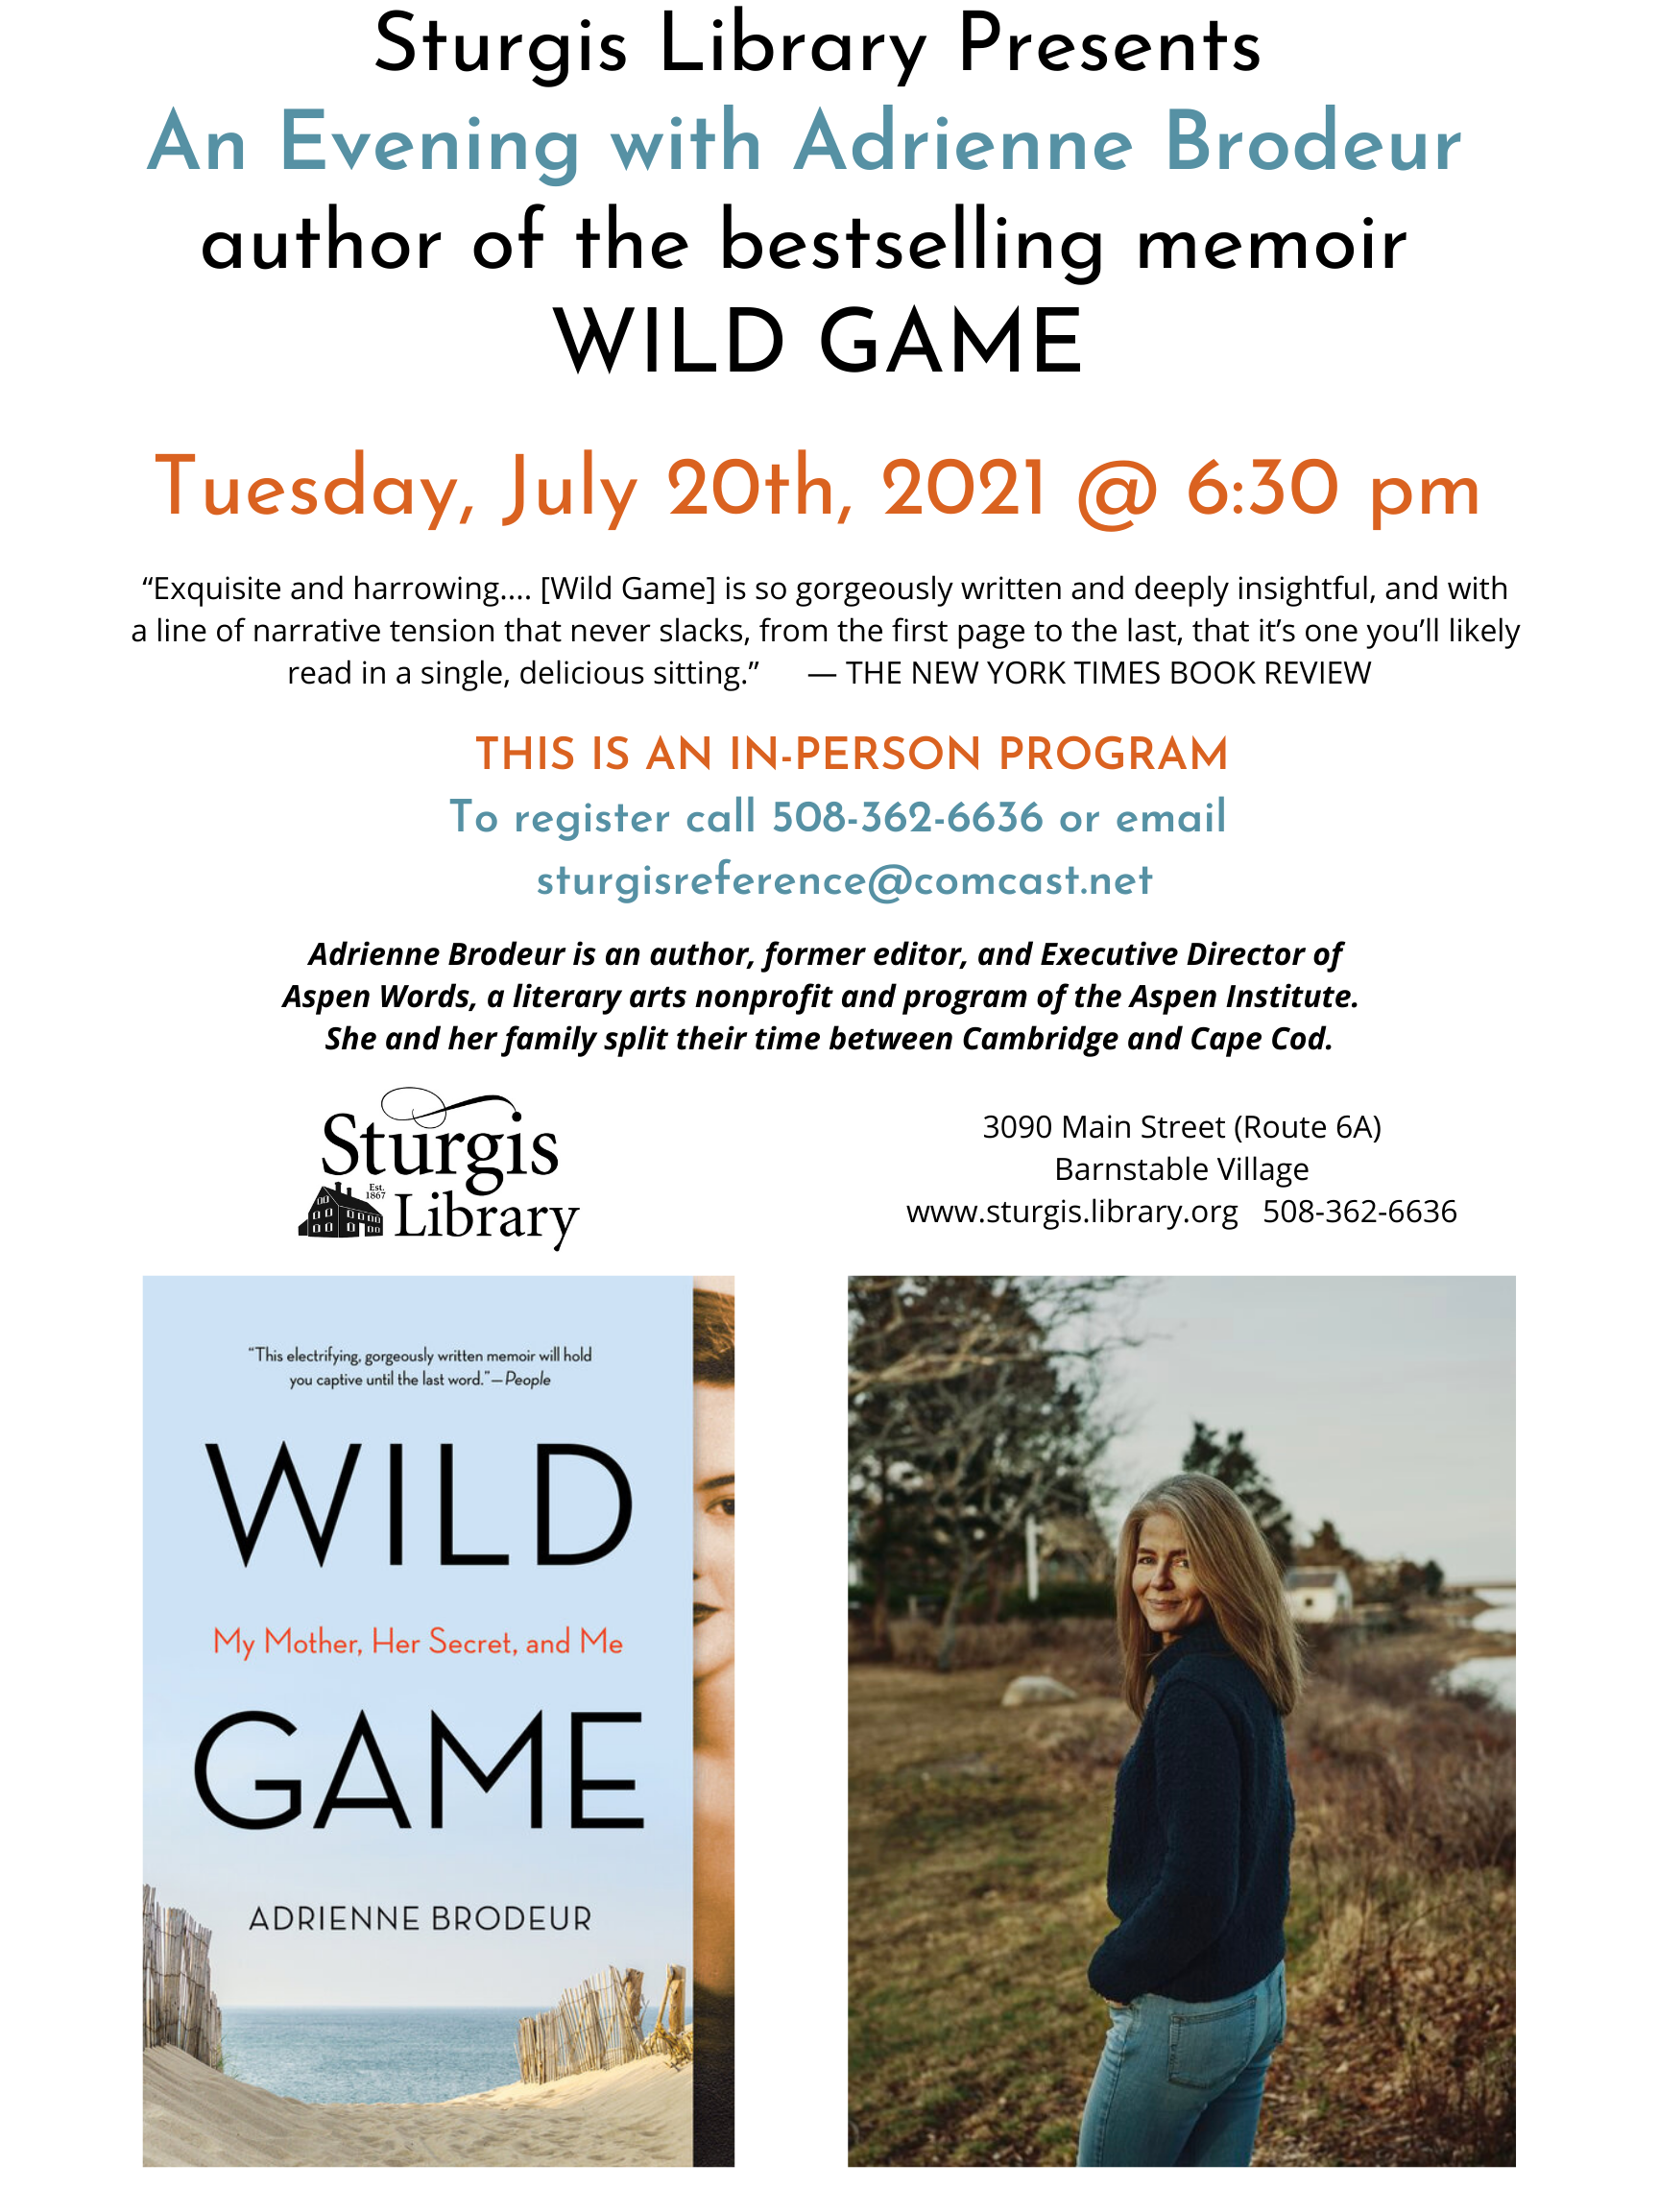 An Evening with Adrienne Brodeur, author of Wild Game NOW IN-PERSON